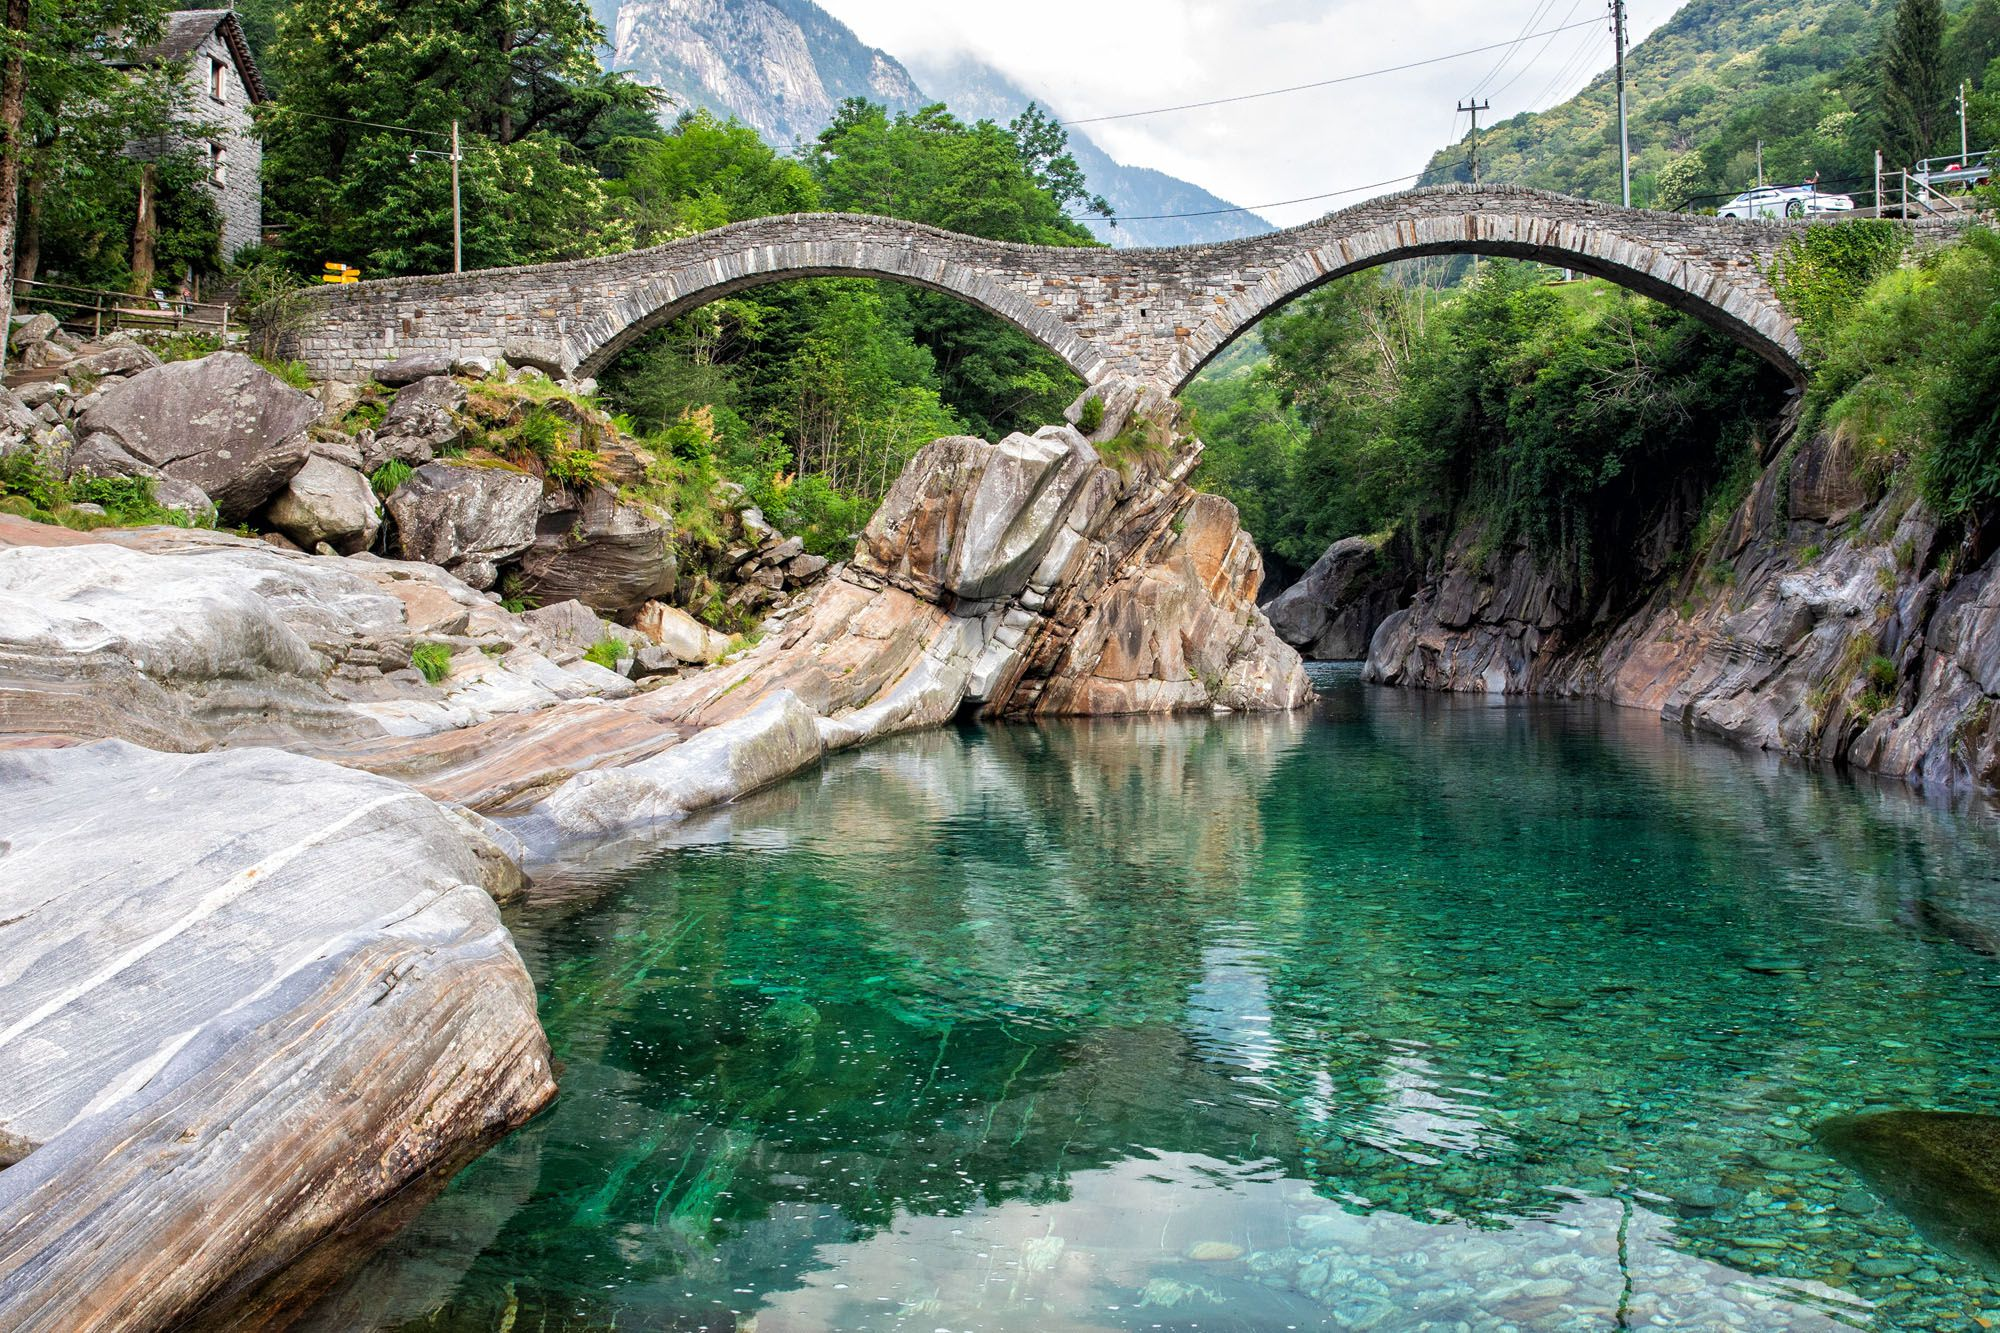 How to Visit Ponte dei Salti Bridge